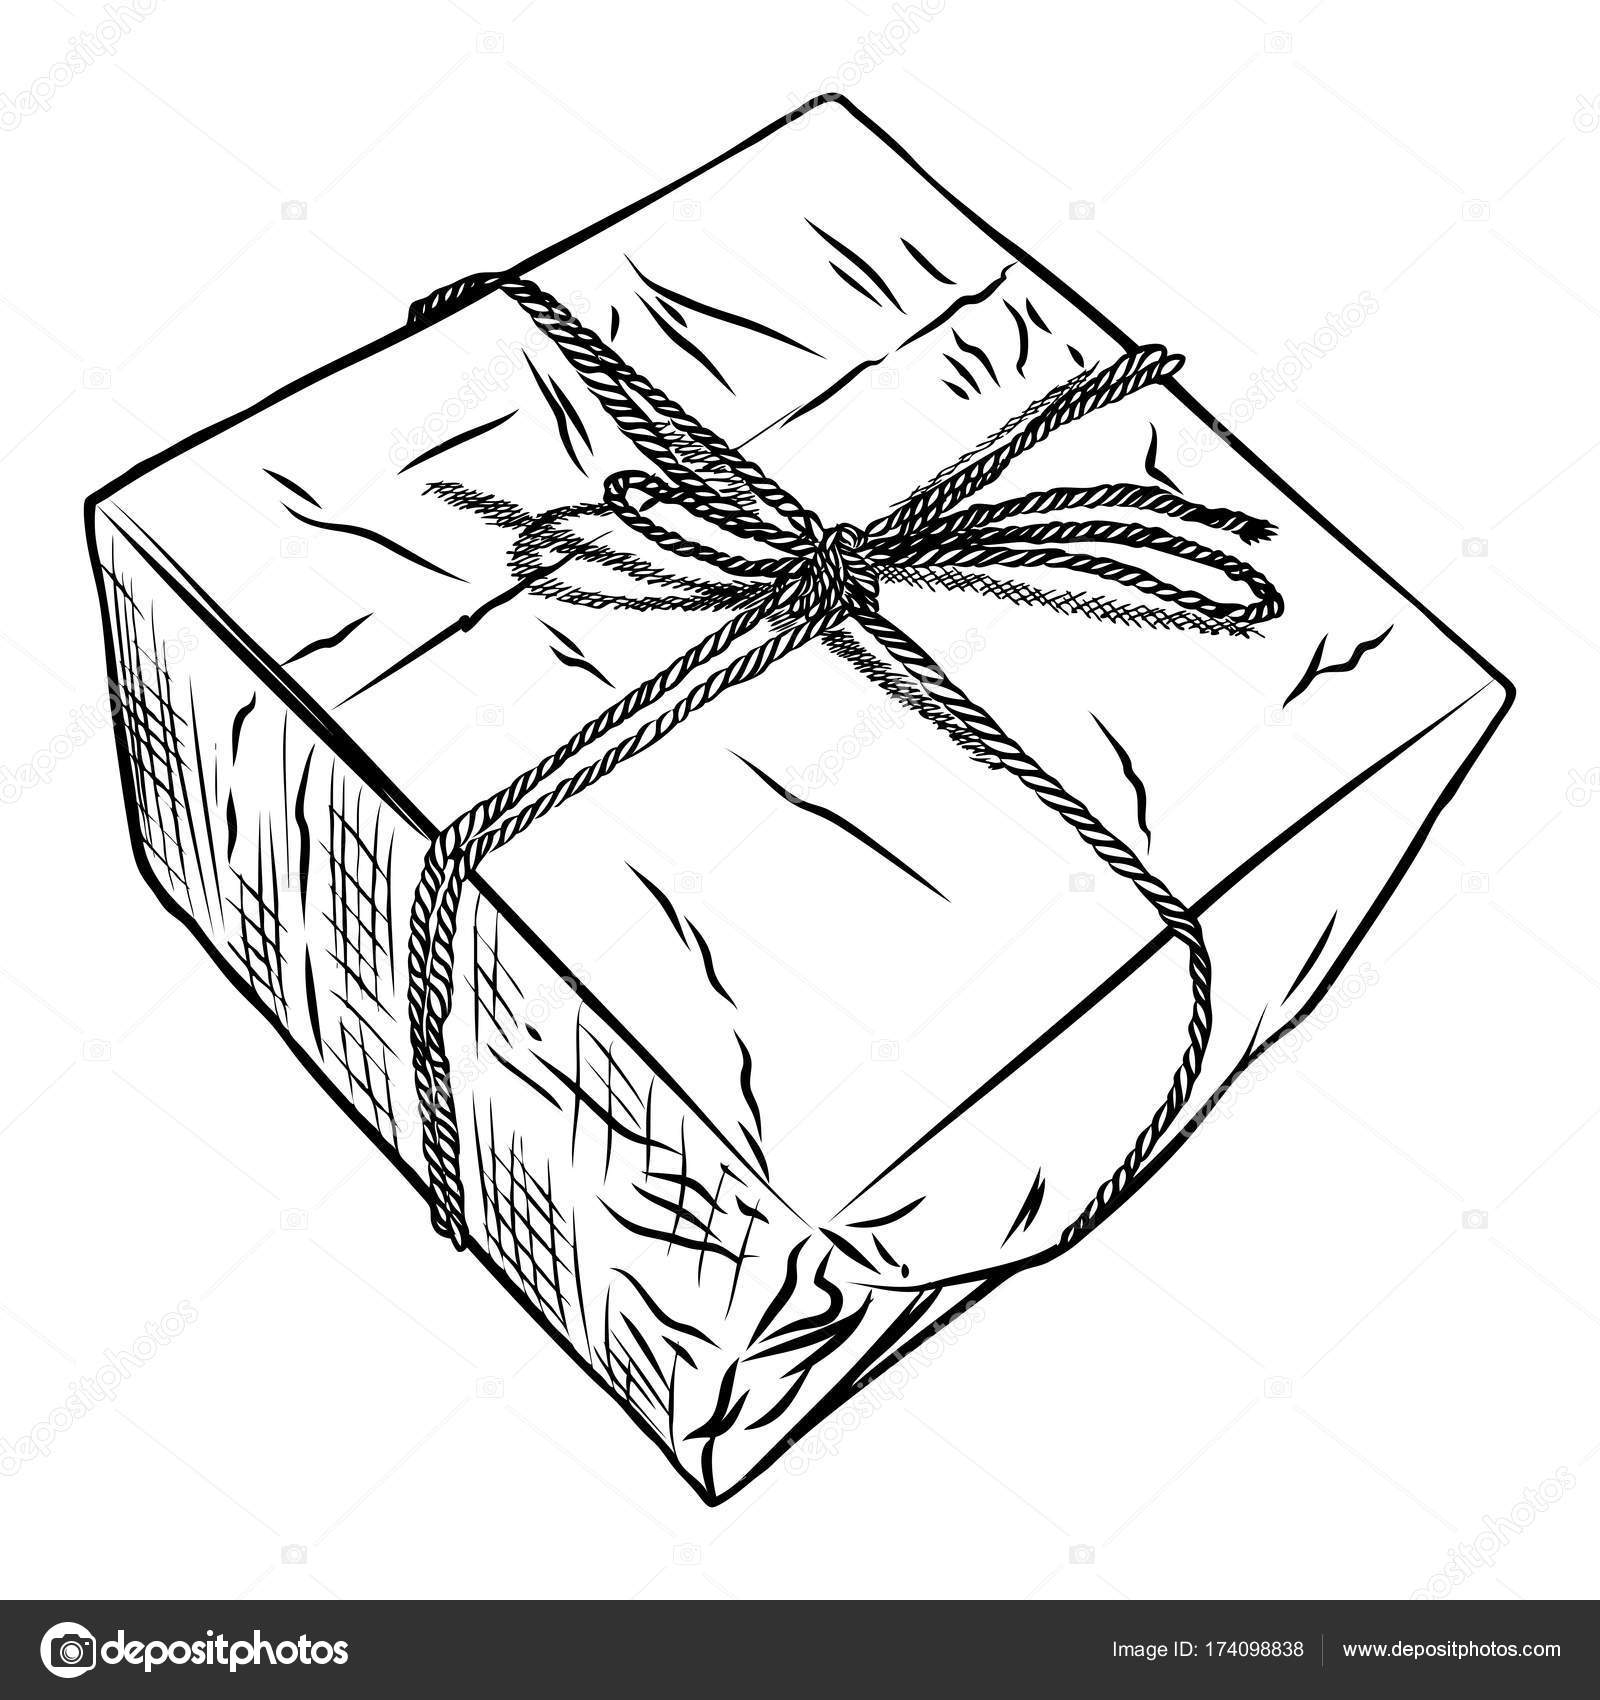 Gift Box Doodle Sketch Wedding Birthday Black Friday Concept Wrapped For Boxing New Year Christmas Idea Design Of Valentine Or Anniversary Day